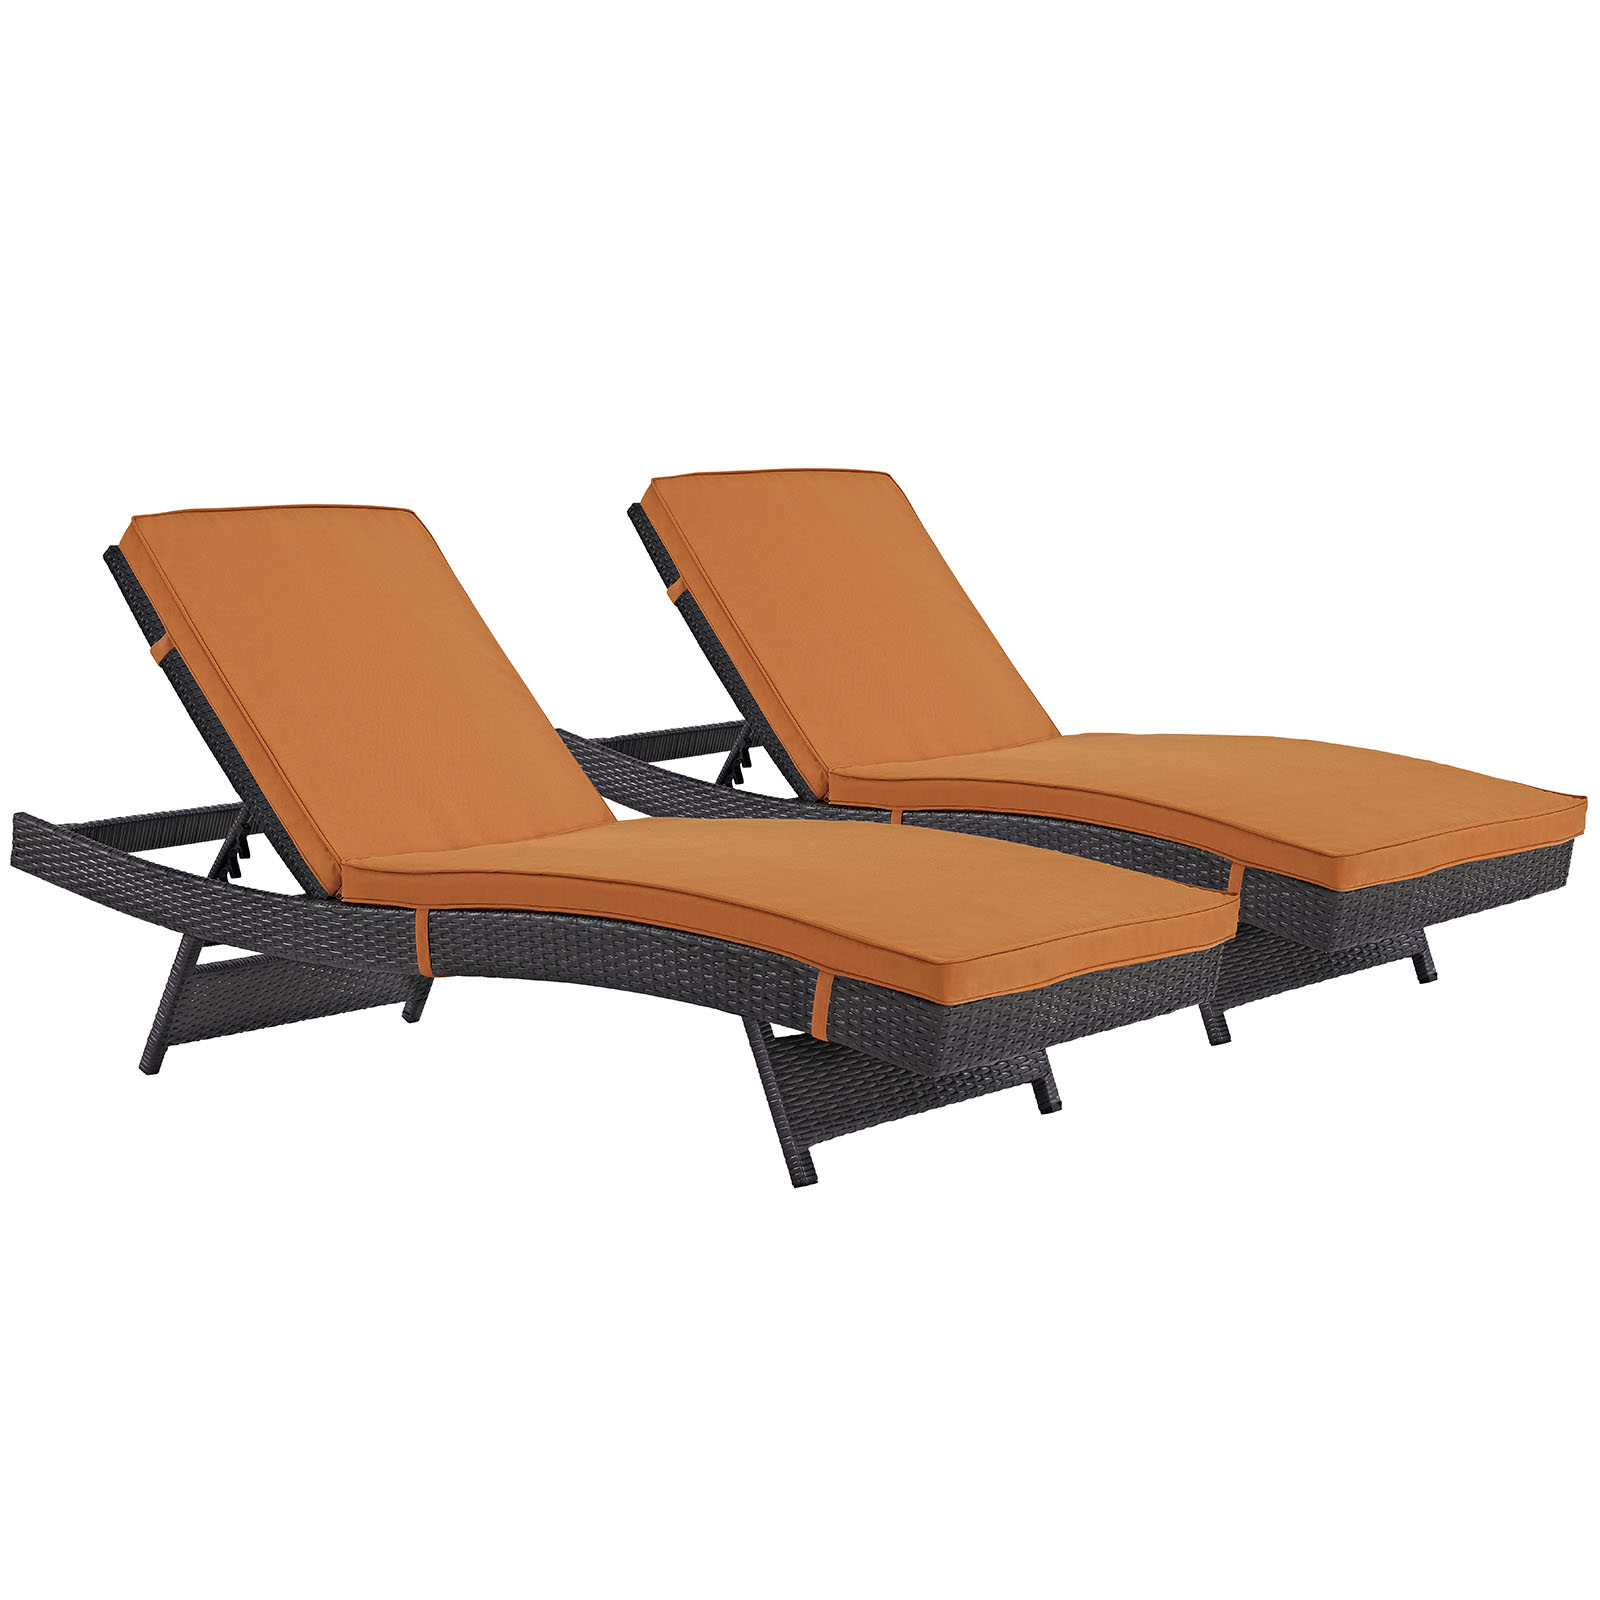 Modern Contemporary Urban Design Outdoor Patio Balcony Chaise Lounge Chair ( Set of 2), Orange, Rattan